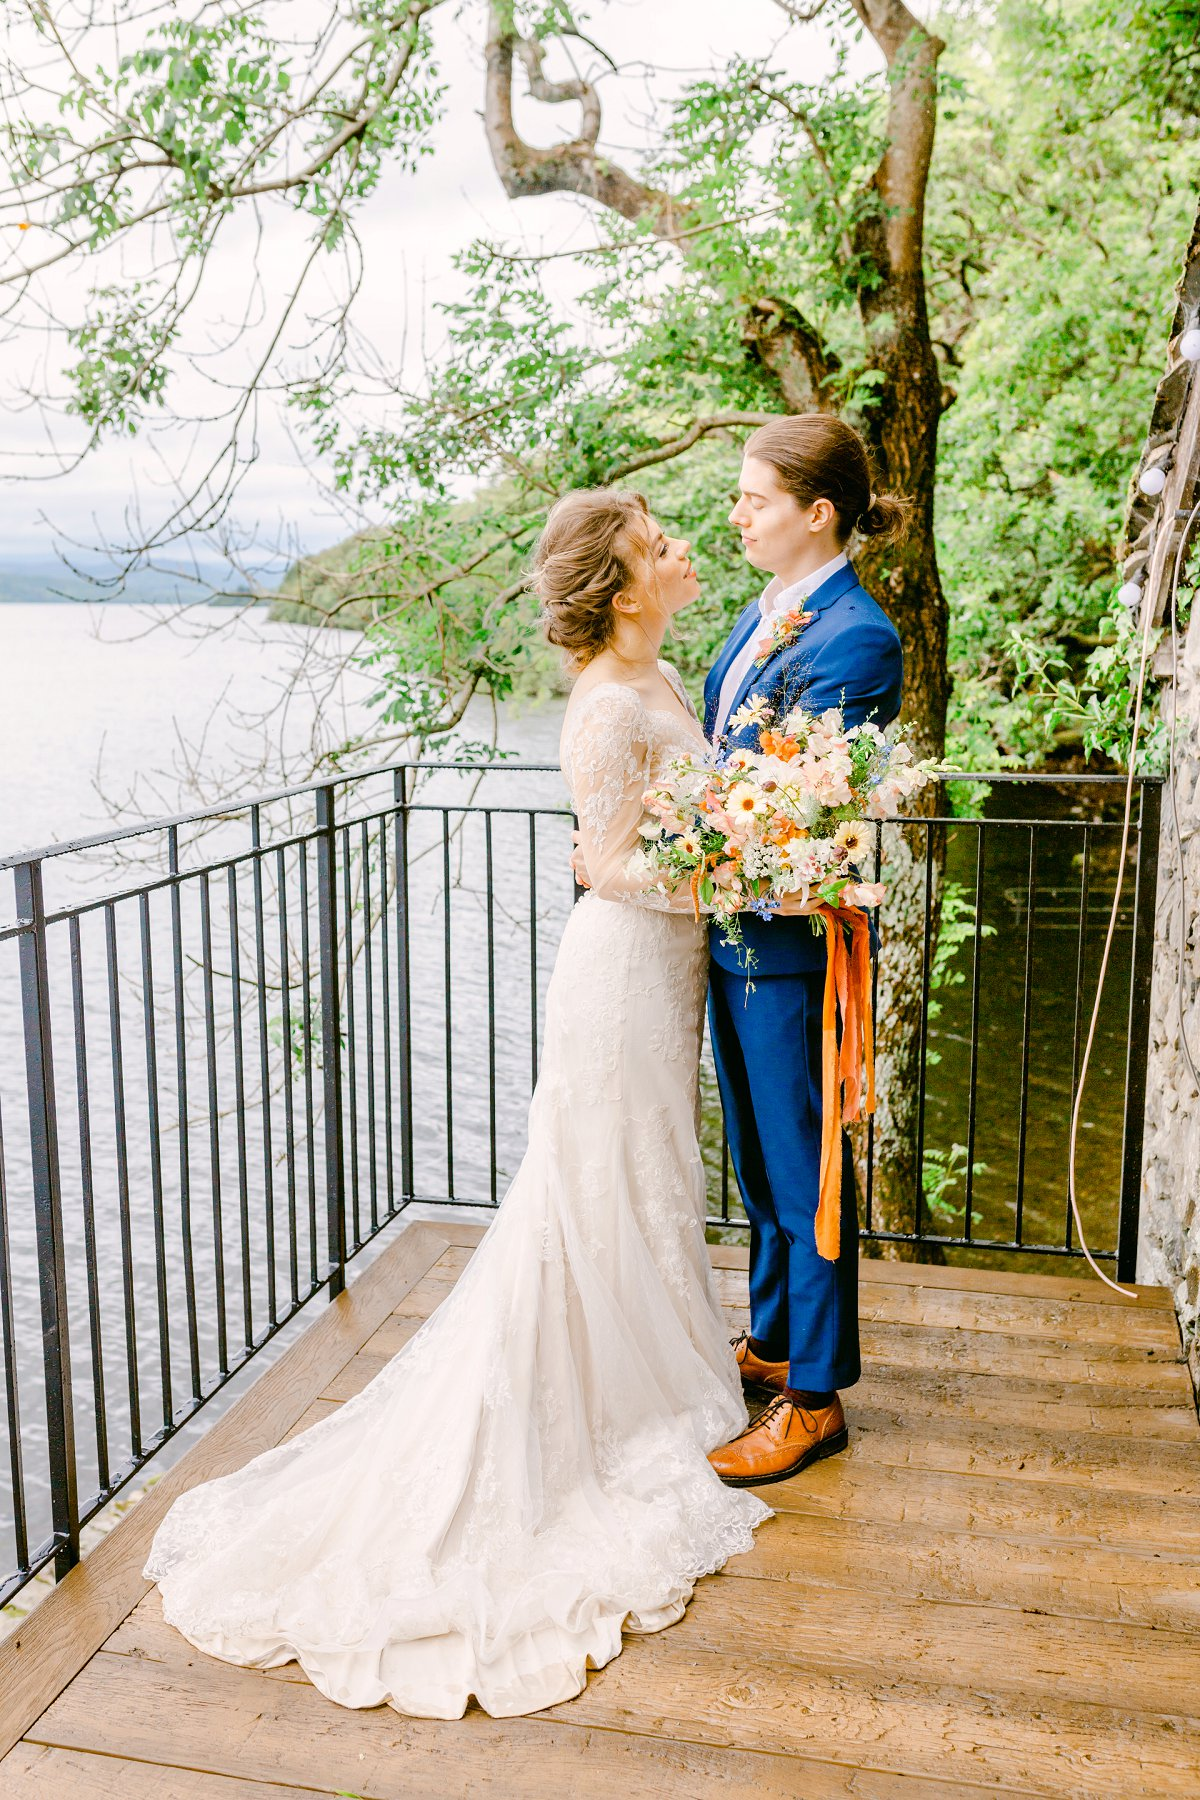 A Styled Wedding Shoot at Town Head Estate Windermere (c) Ailsa Reeve Photography (10)